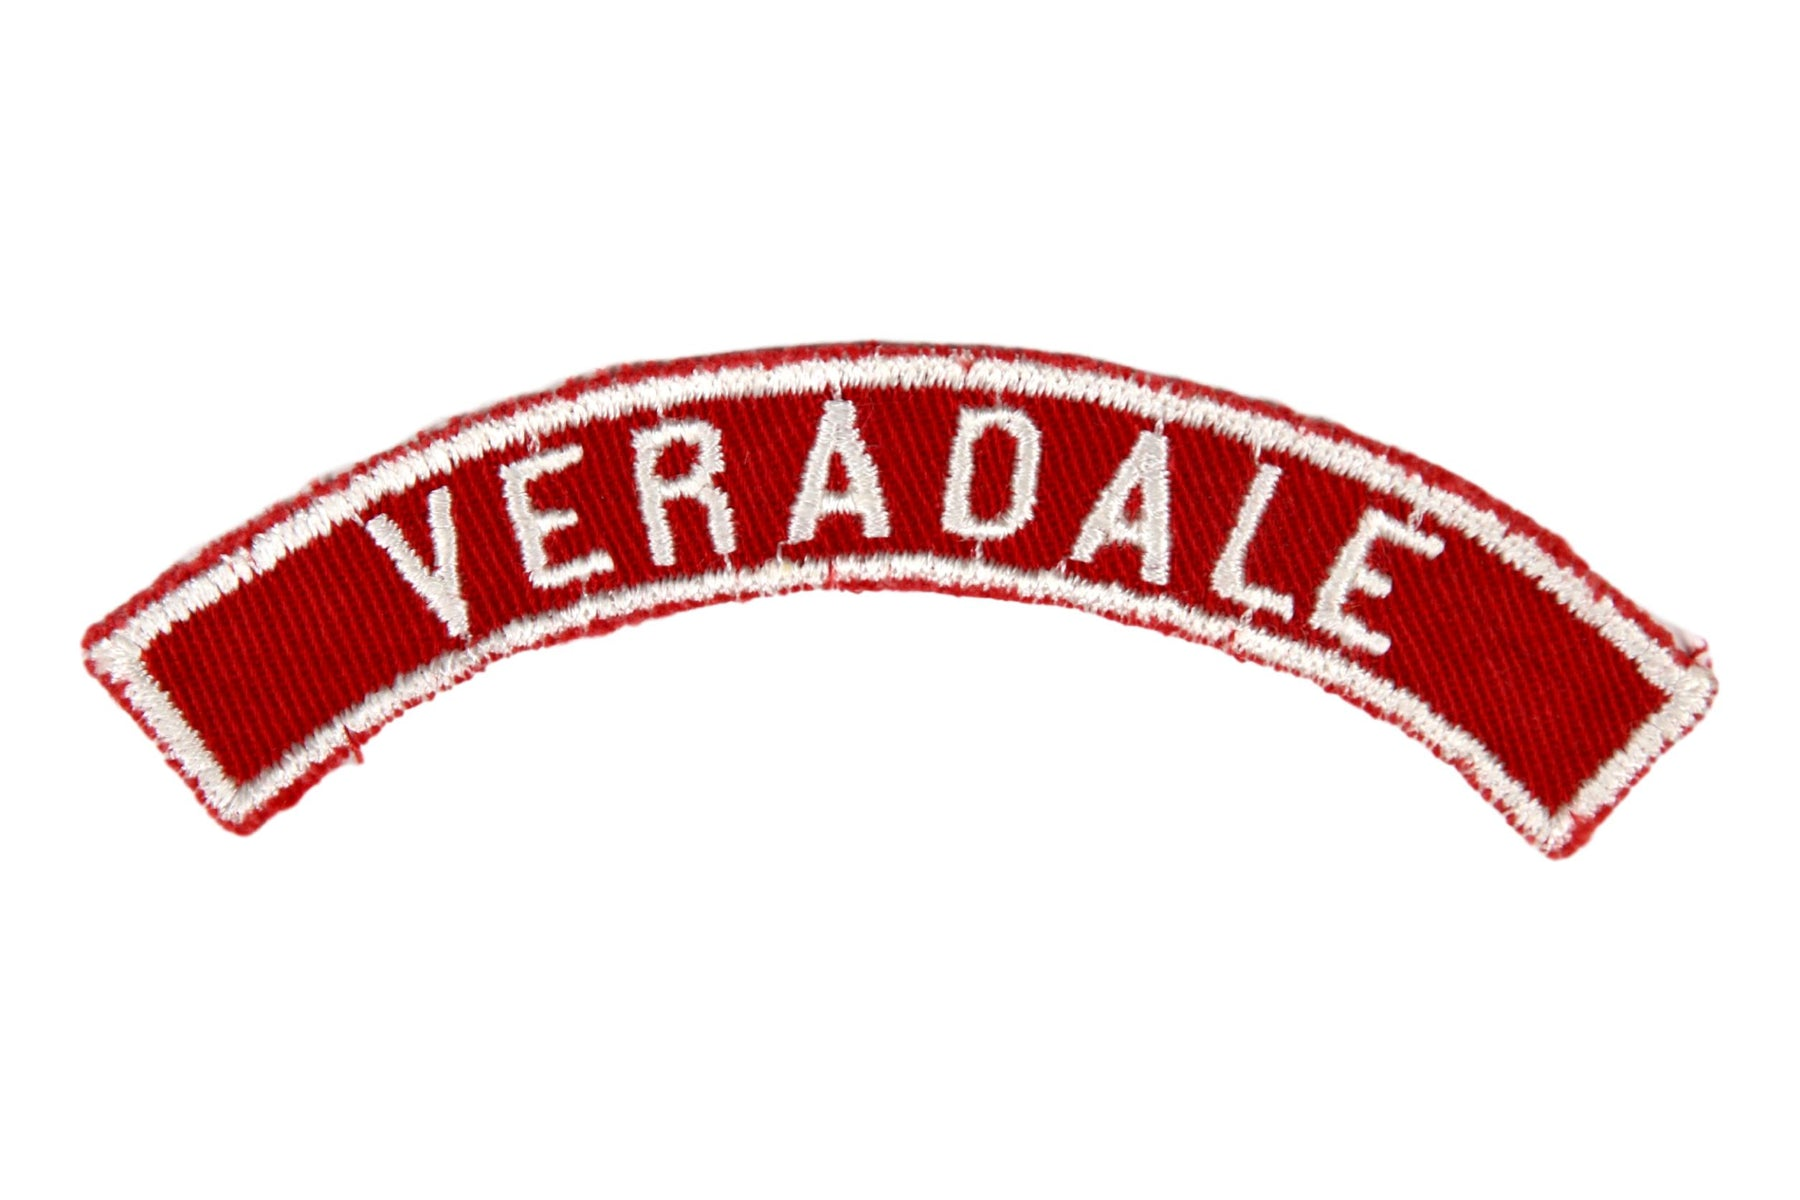 Veradale Red and White City Strip